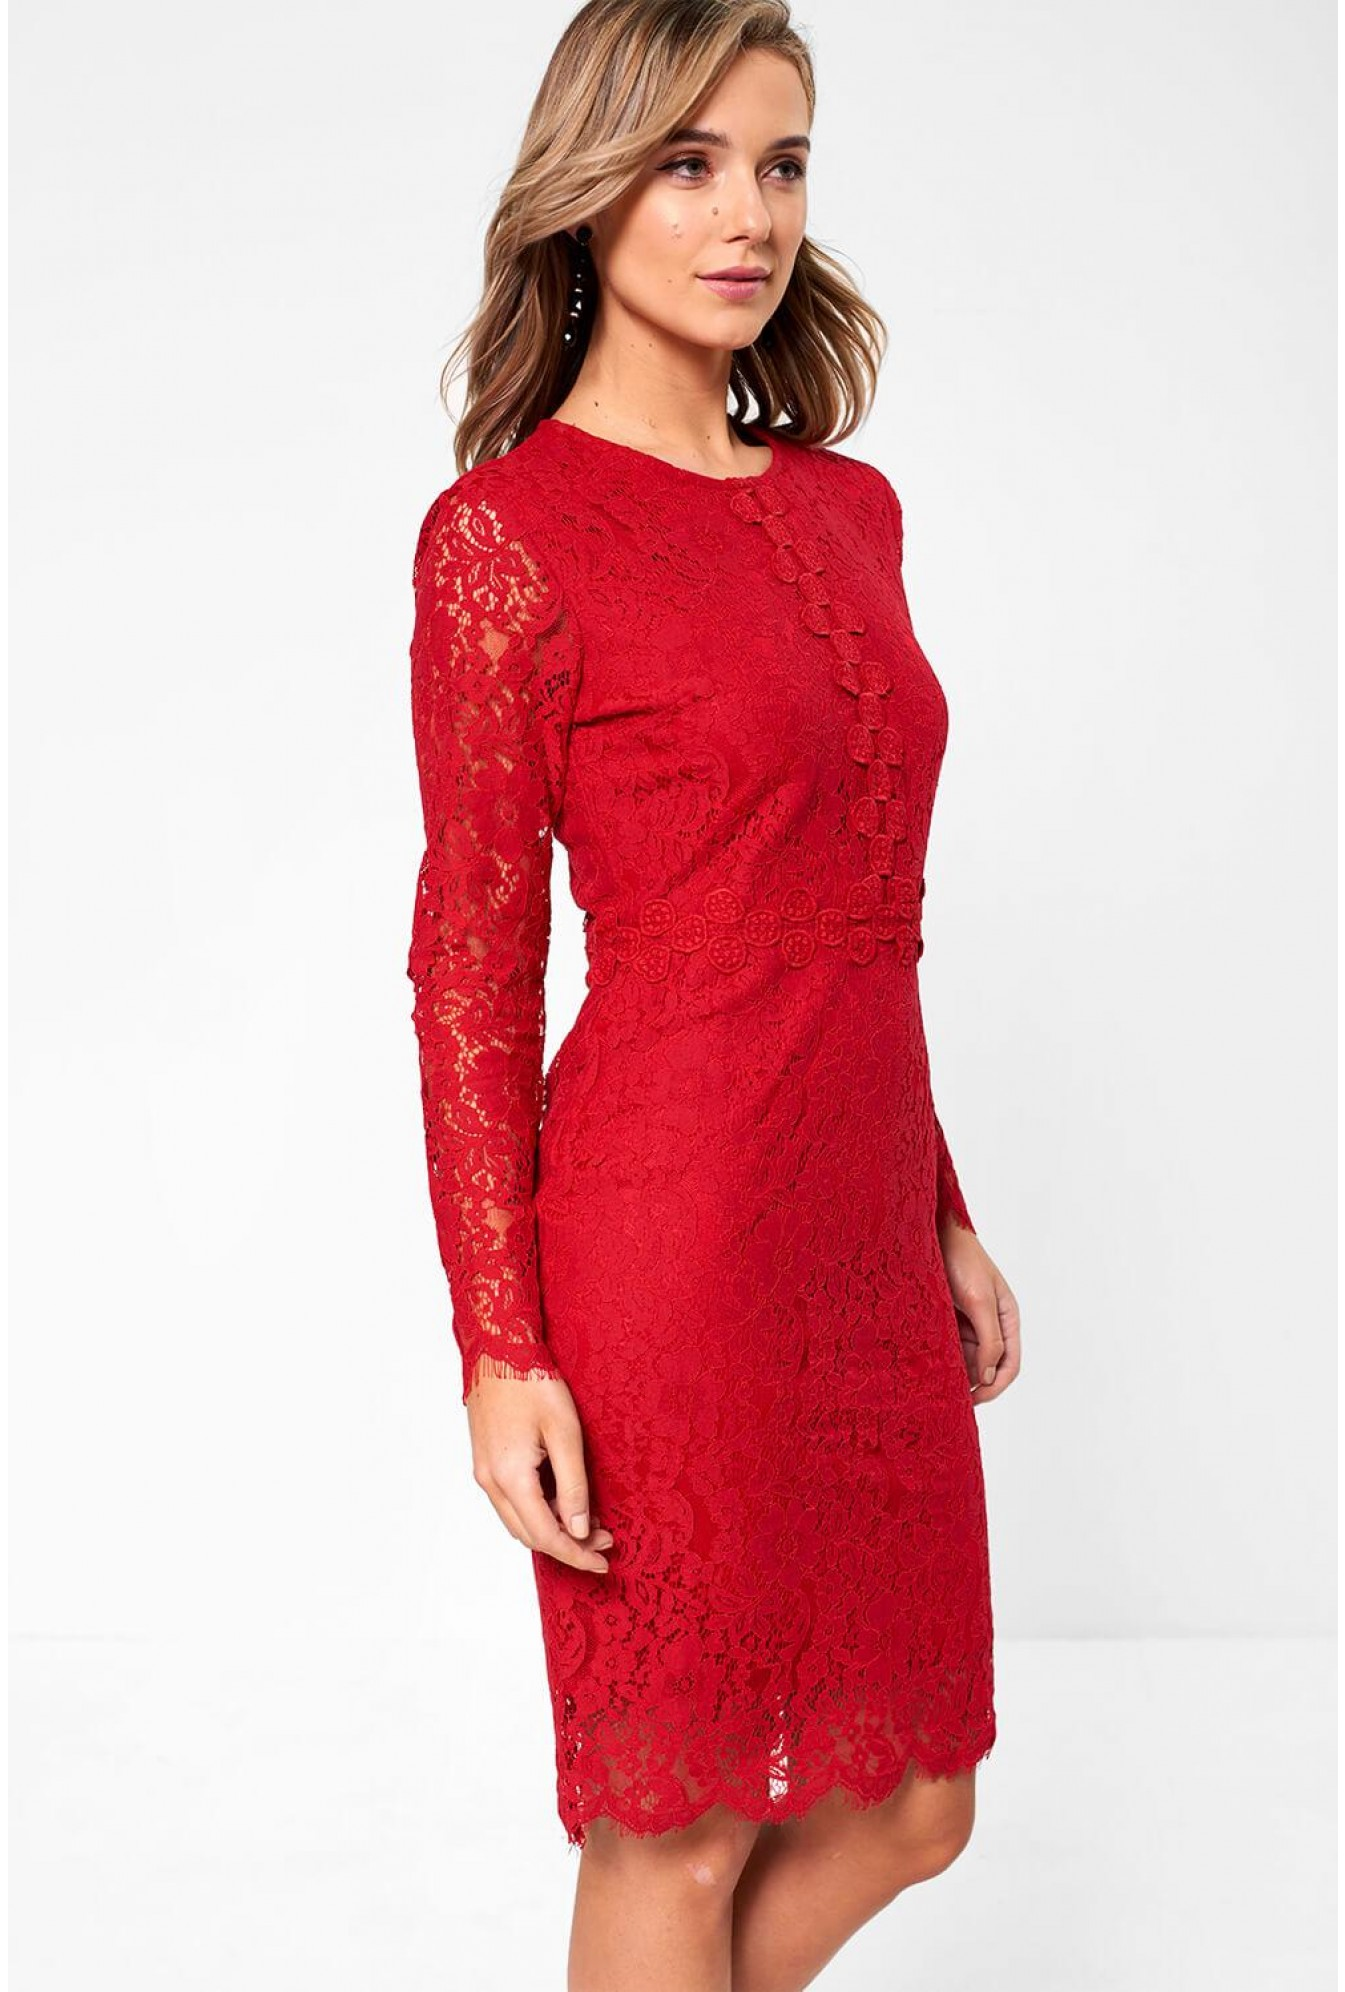 5d0873a3b2bd Marc Angelo Katie Long Sleeve Lace Dress in Red